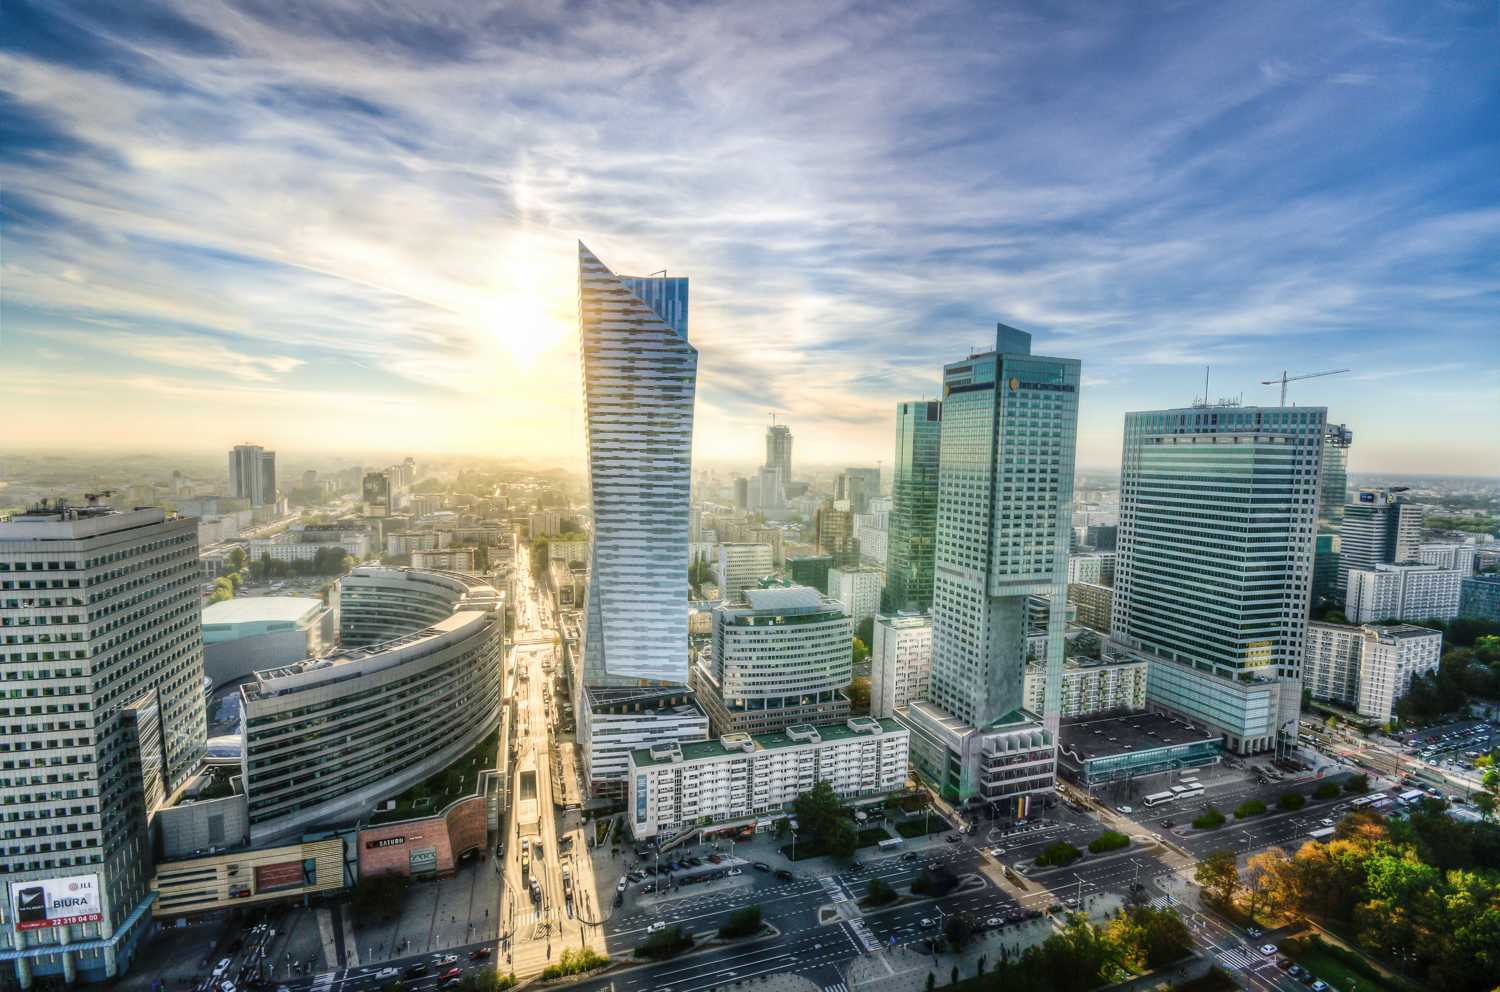 The Warsaw city center • photo by Peter Heeling (CC0)